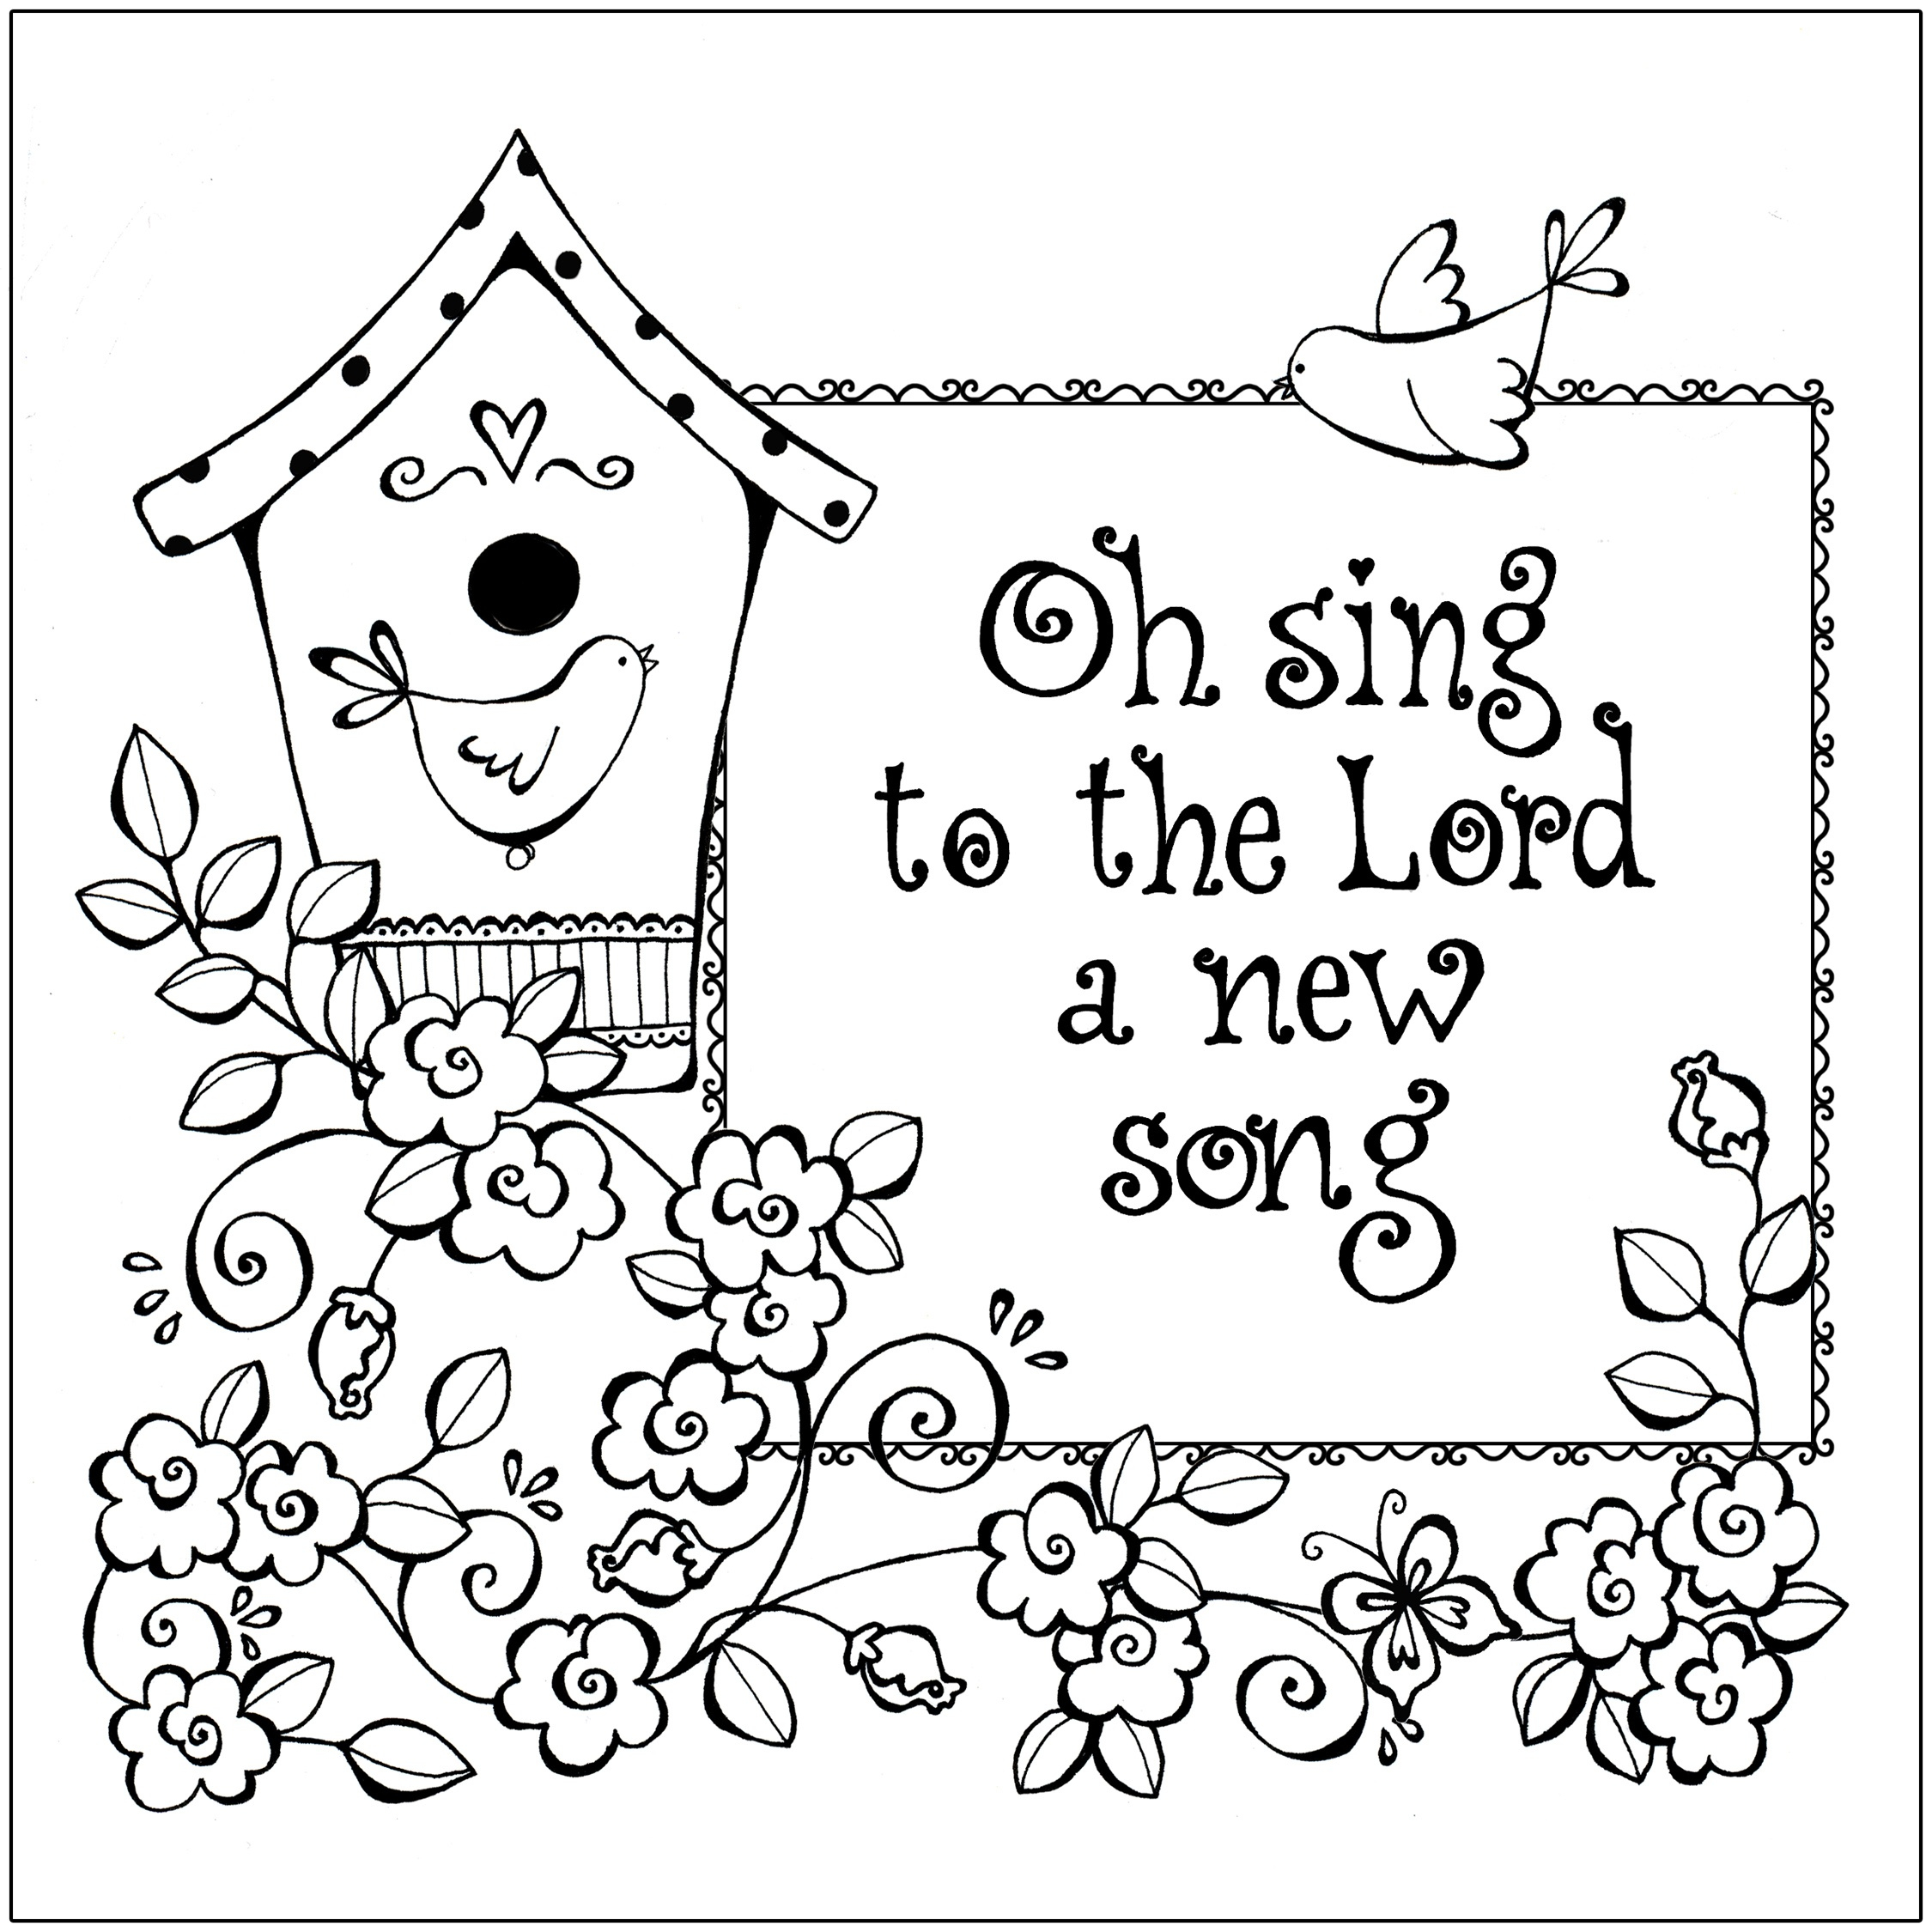 free printable sunday school coloring pages Collection-Fall Sunday School Coloring Pages Free Printable Sunday School Coloring Pages Lovely Kids Bible 15-b